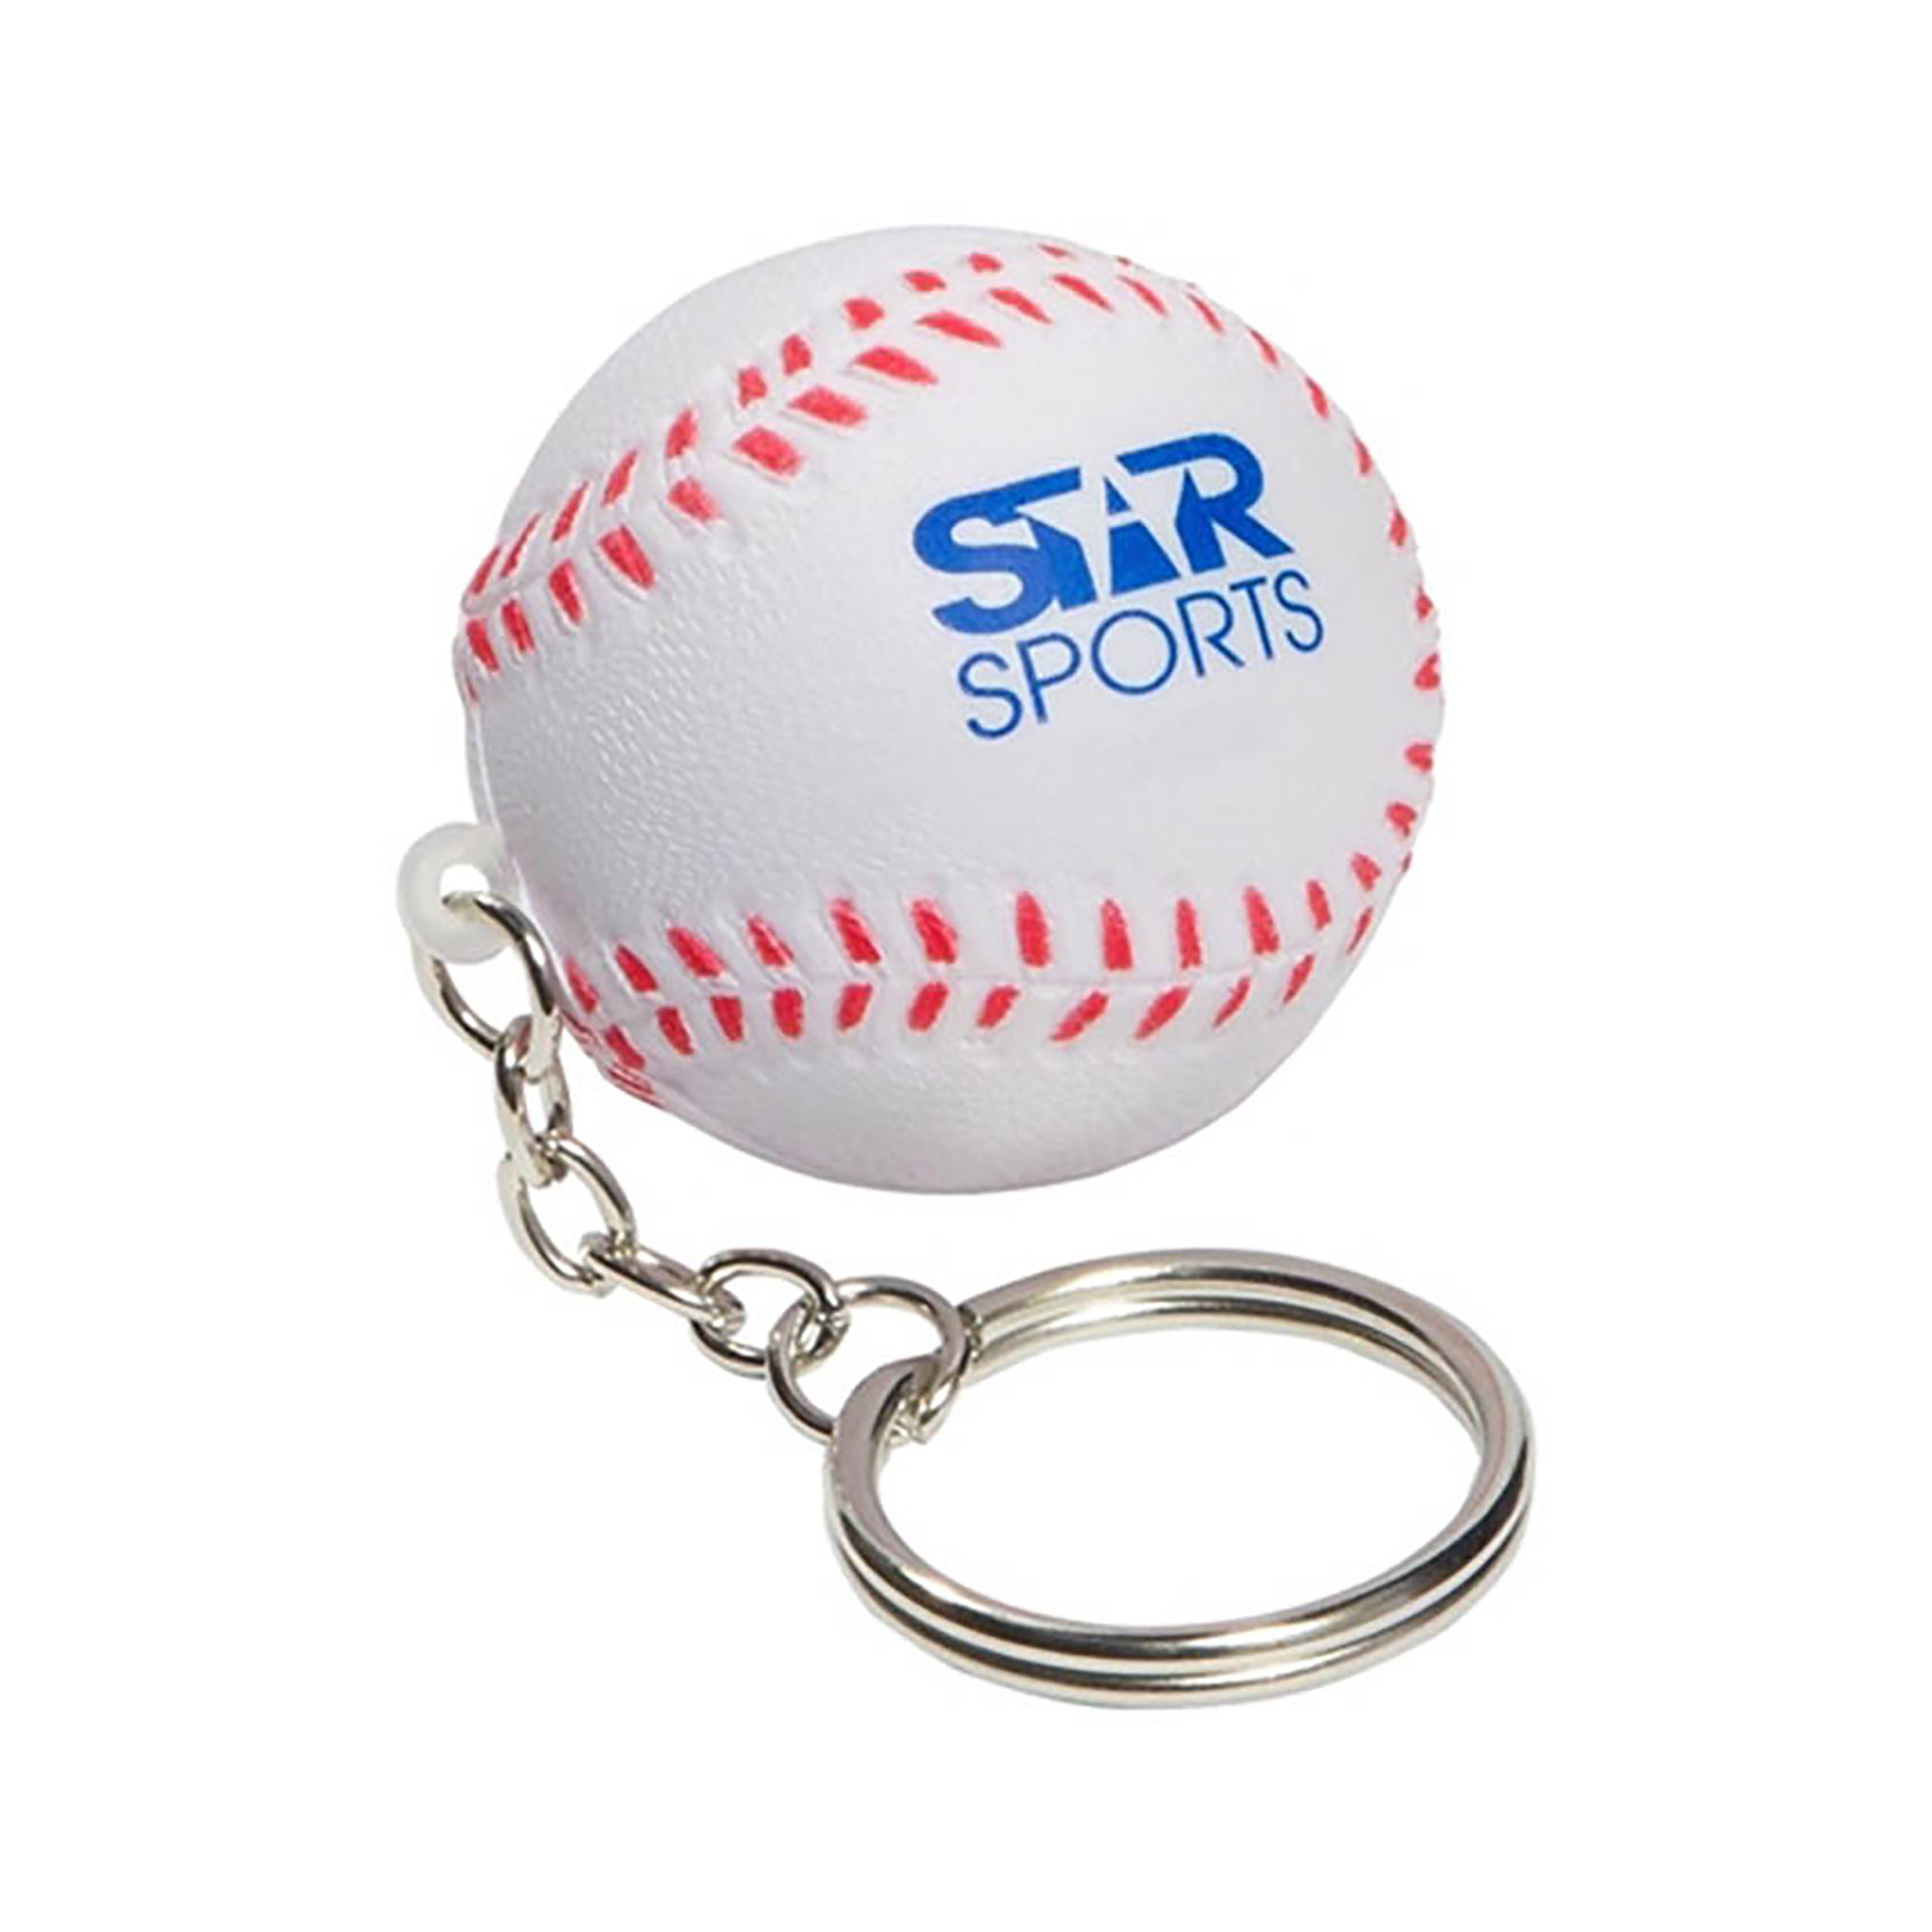 STRESS BASEBALL KEYRING - 1 Colour Print, From $0.57